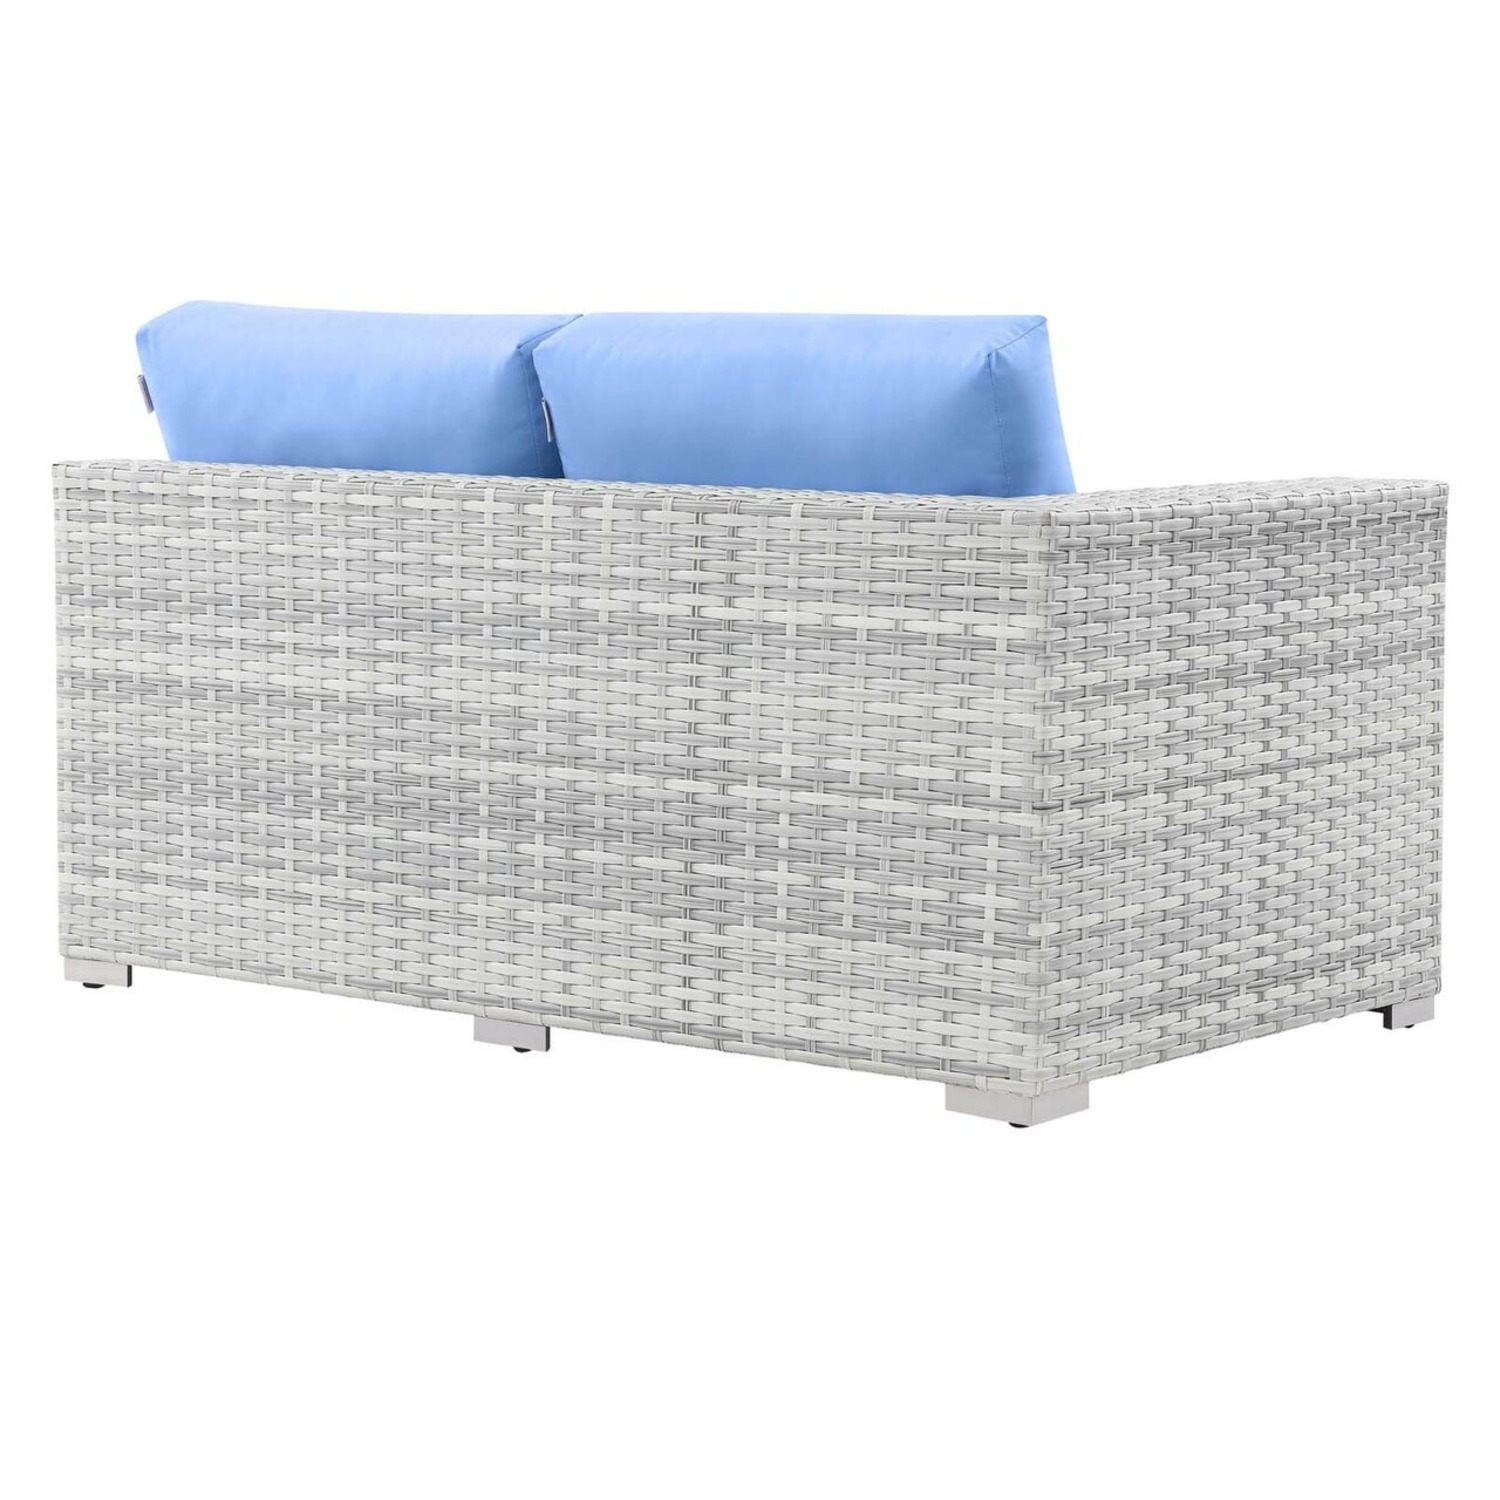 6-Piece Outdoor Patio Sectional In Light Blue Seat - image-7